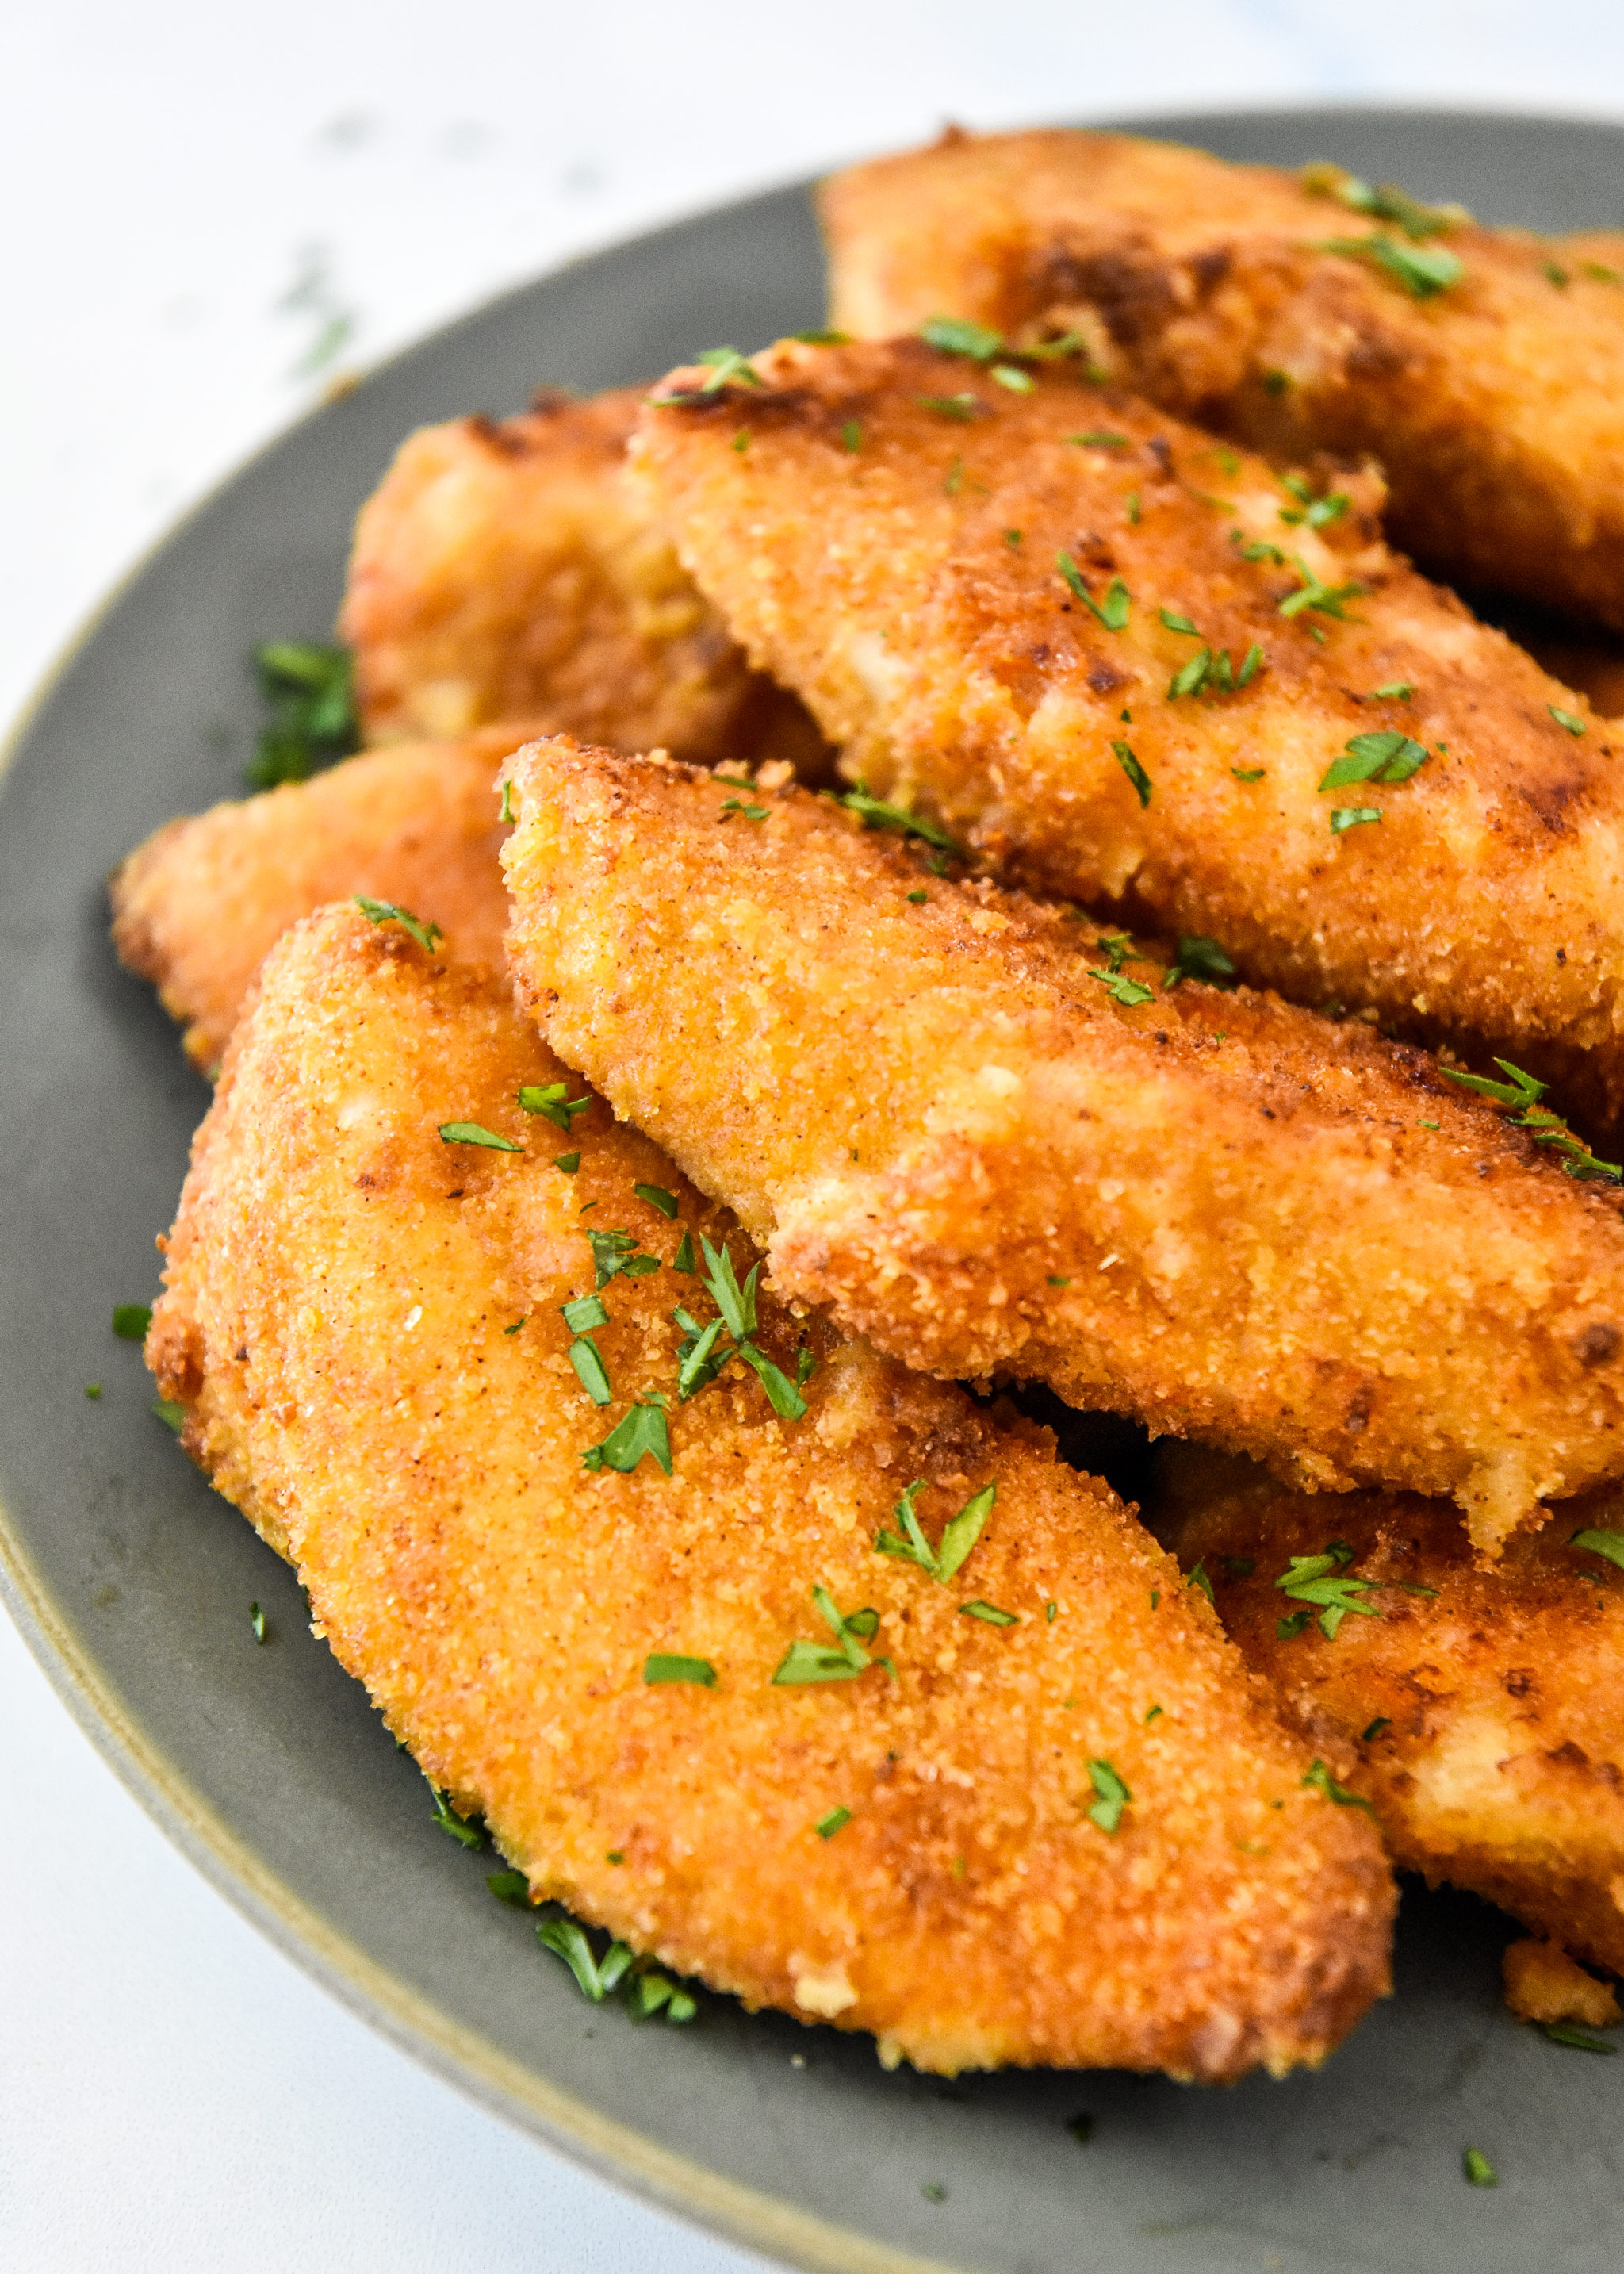 delicious air fryer breaded chicken tenders on a plate ready to eat.